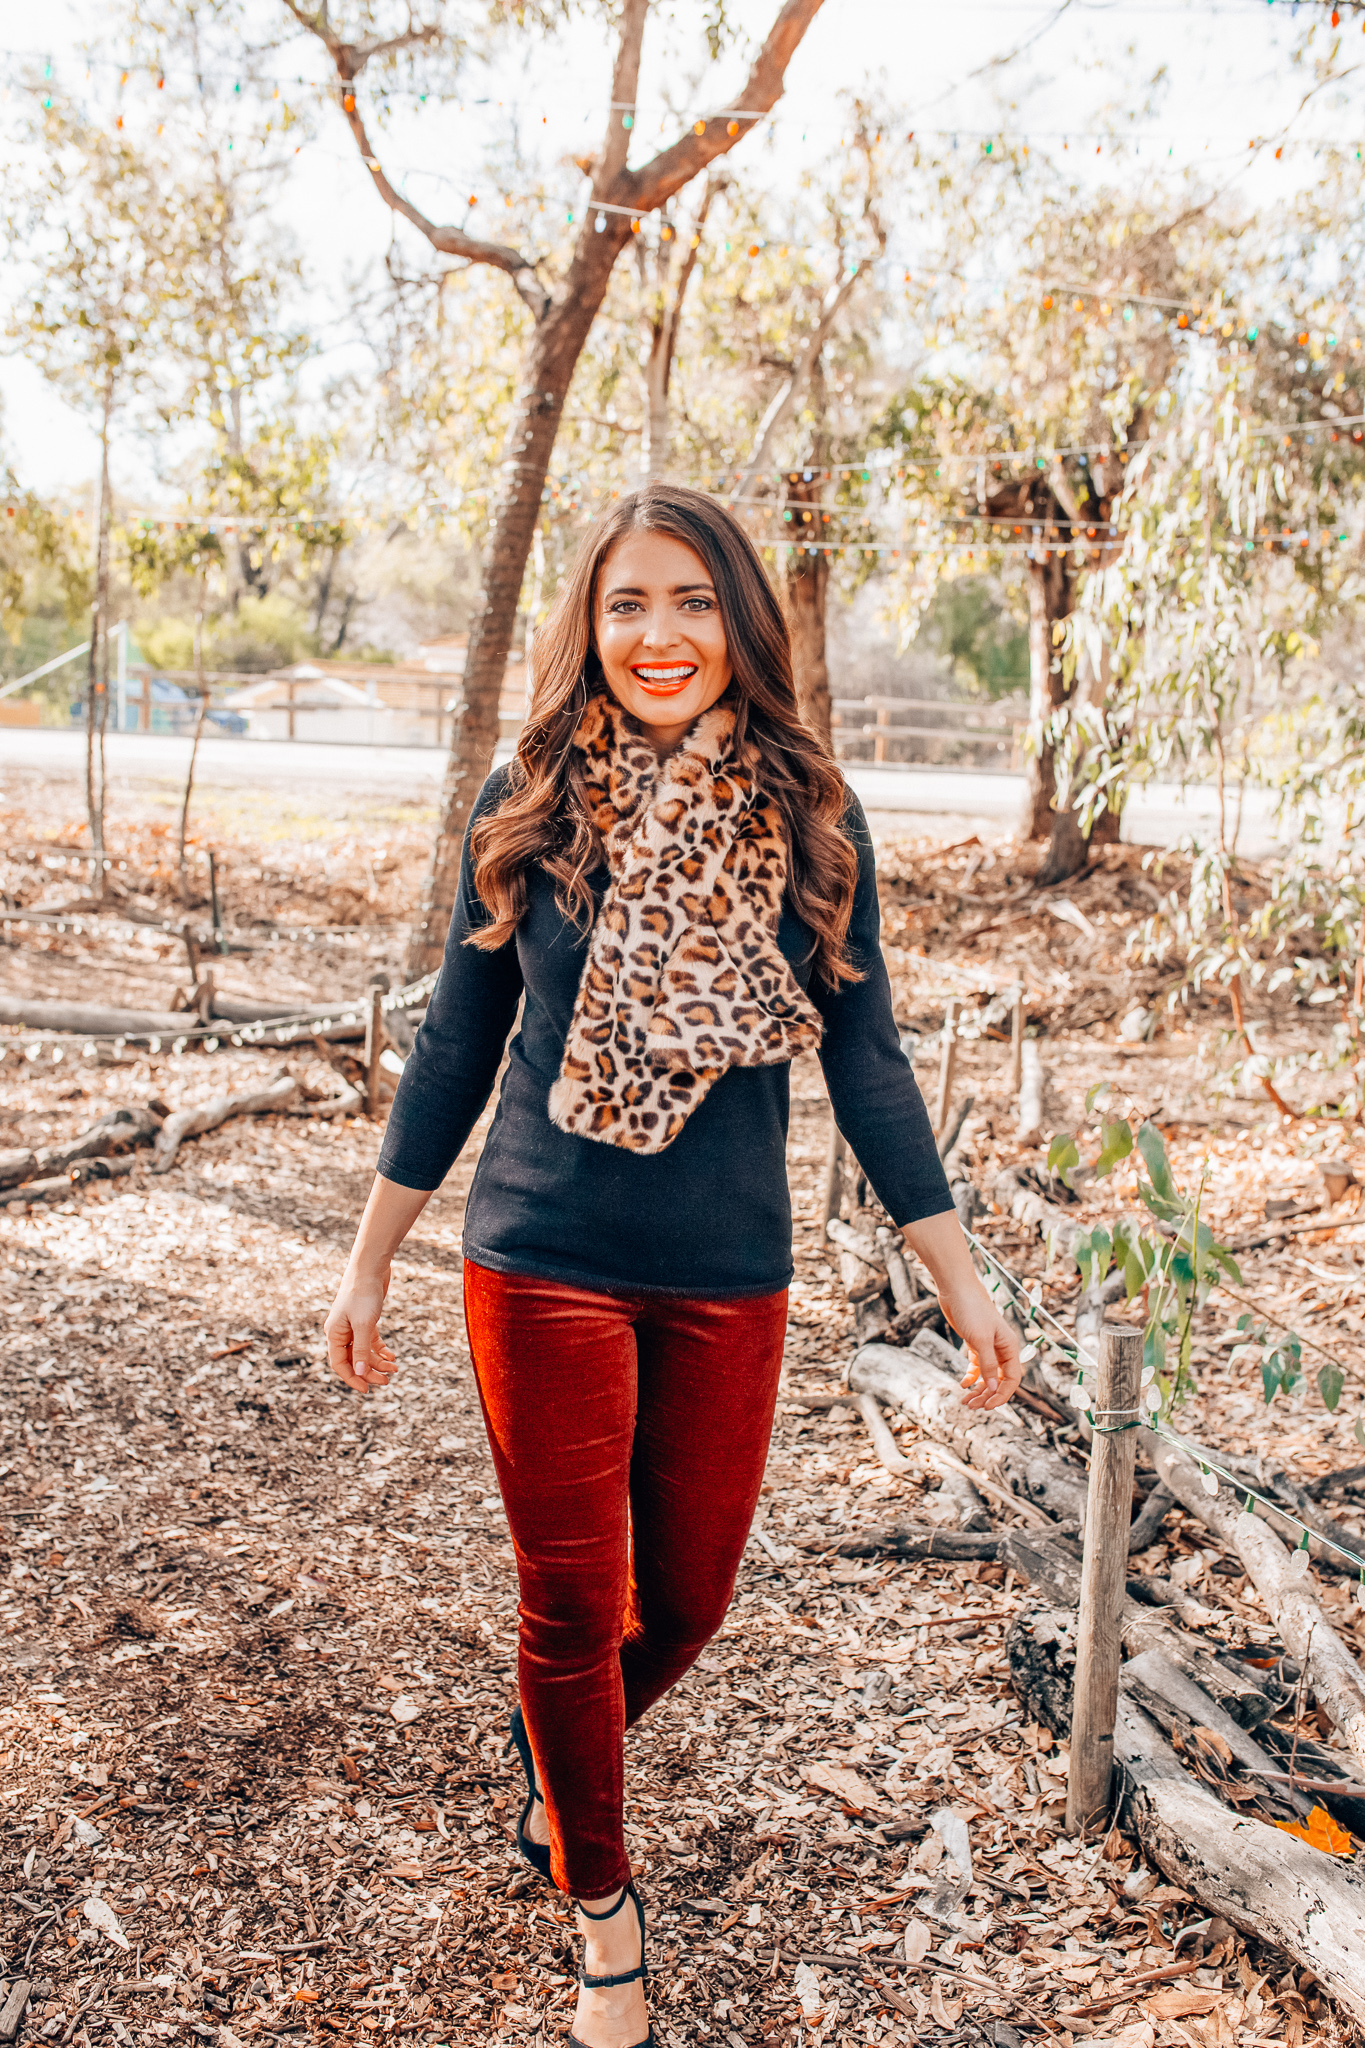 Leopard Holiday style featured by top Orange County fashion blogger, Maxie Elle: image of a woman wearing an Ann Taylor 3/4 sleeve black sweater, Ann Taylor faux fur stole, Ann Taylor red velvet pants, and Ann Taylor suede bow pumps